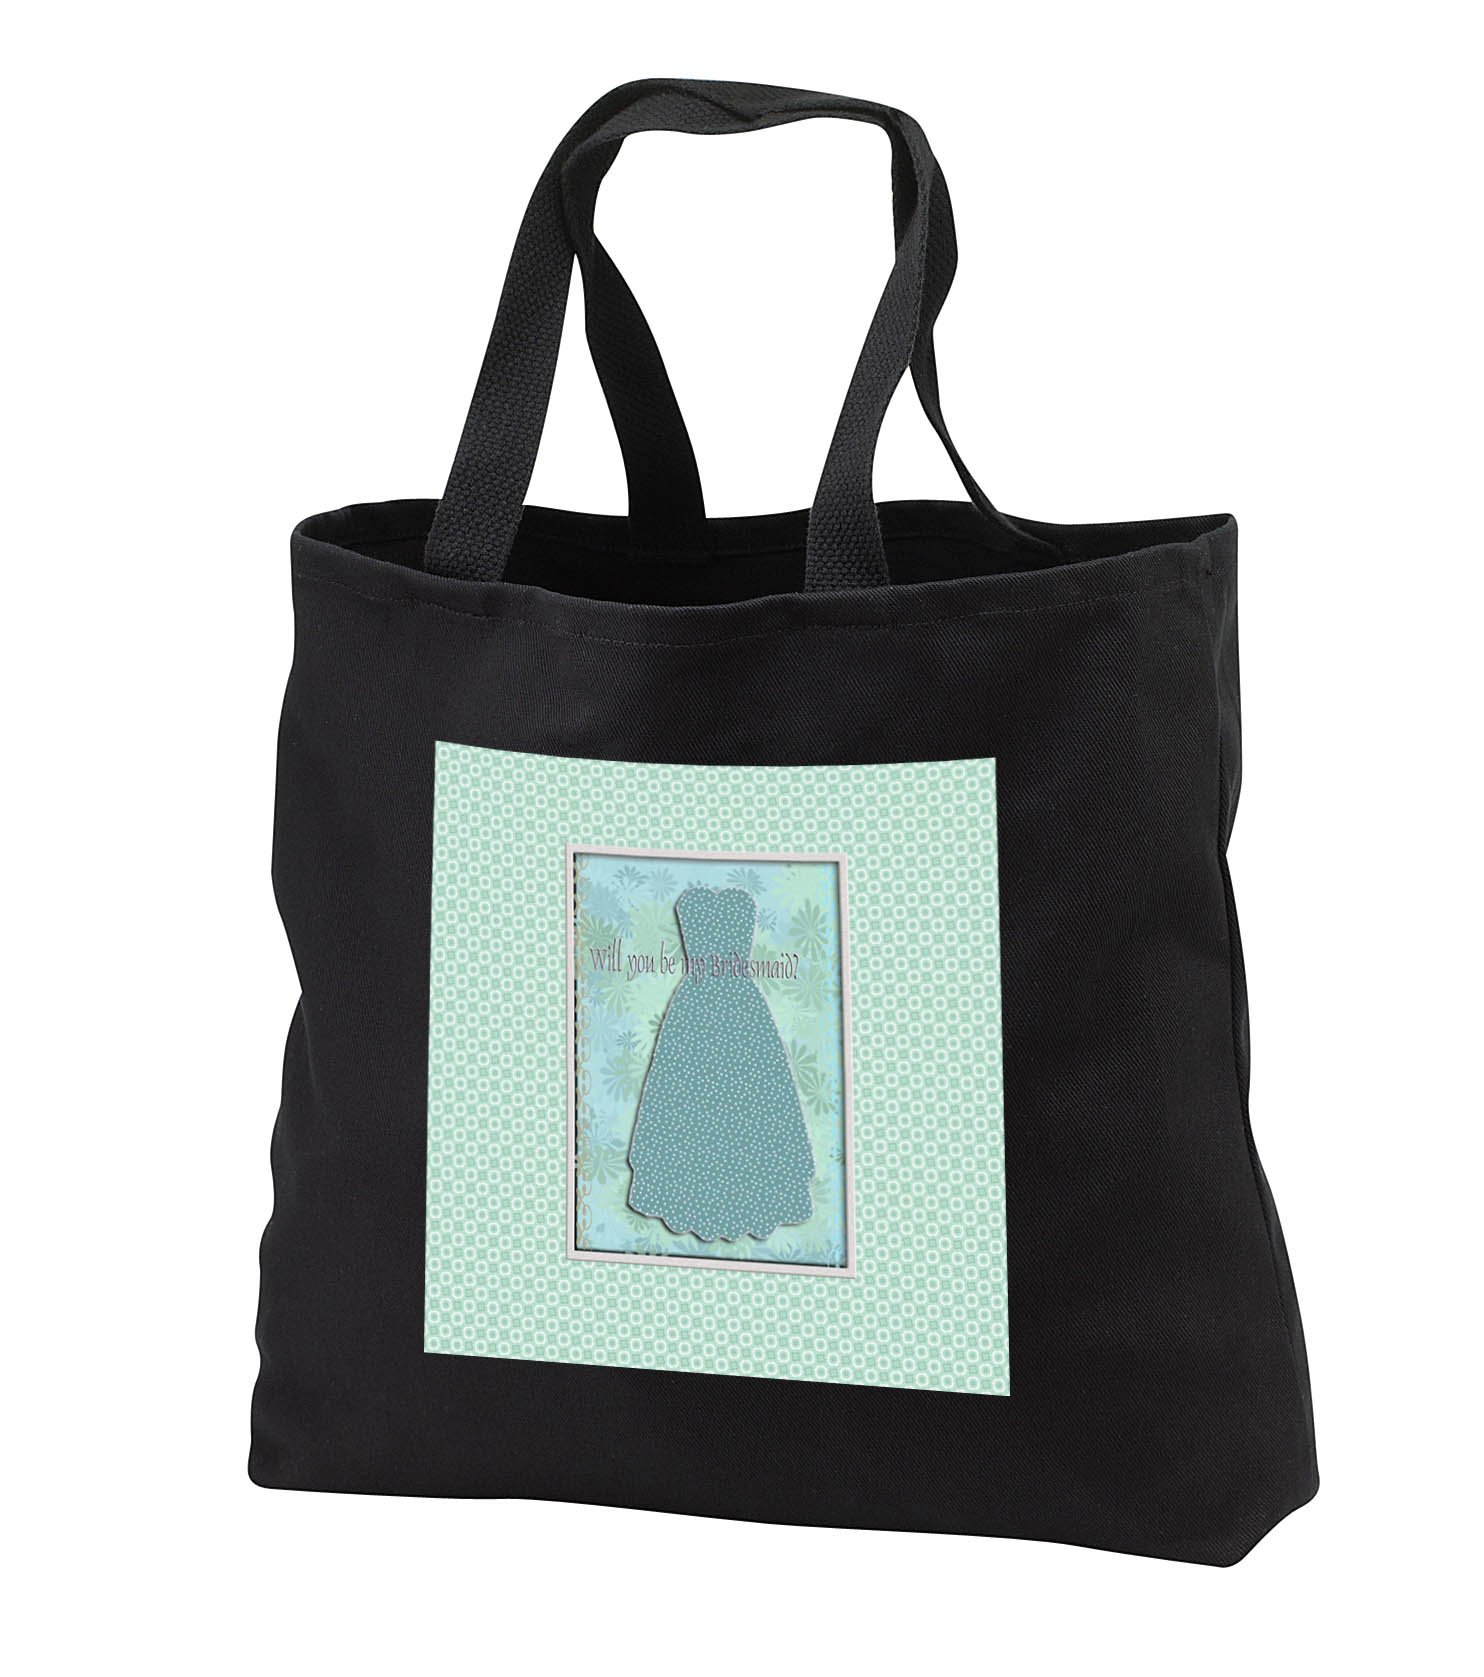 Beverly Turner Wedding Bridal Party Design - Bridesmaid Request, Dotted Green Teal Dress, Larger Dot Background - Tote Bags - Black Tote Bag 14w x 14h x 3d (tb_282210_1)